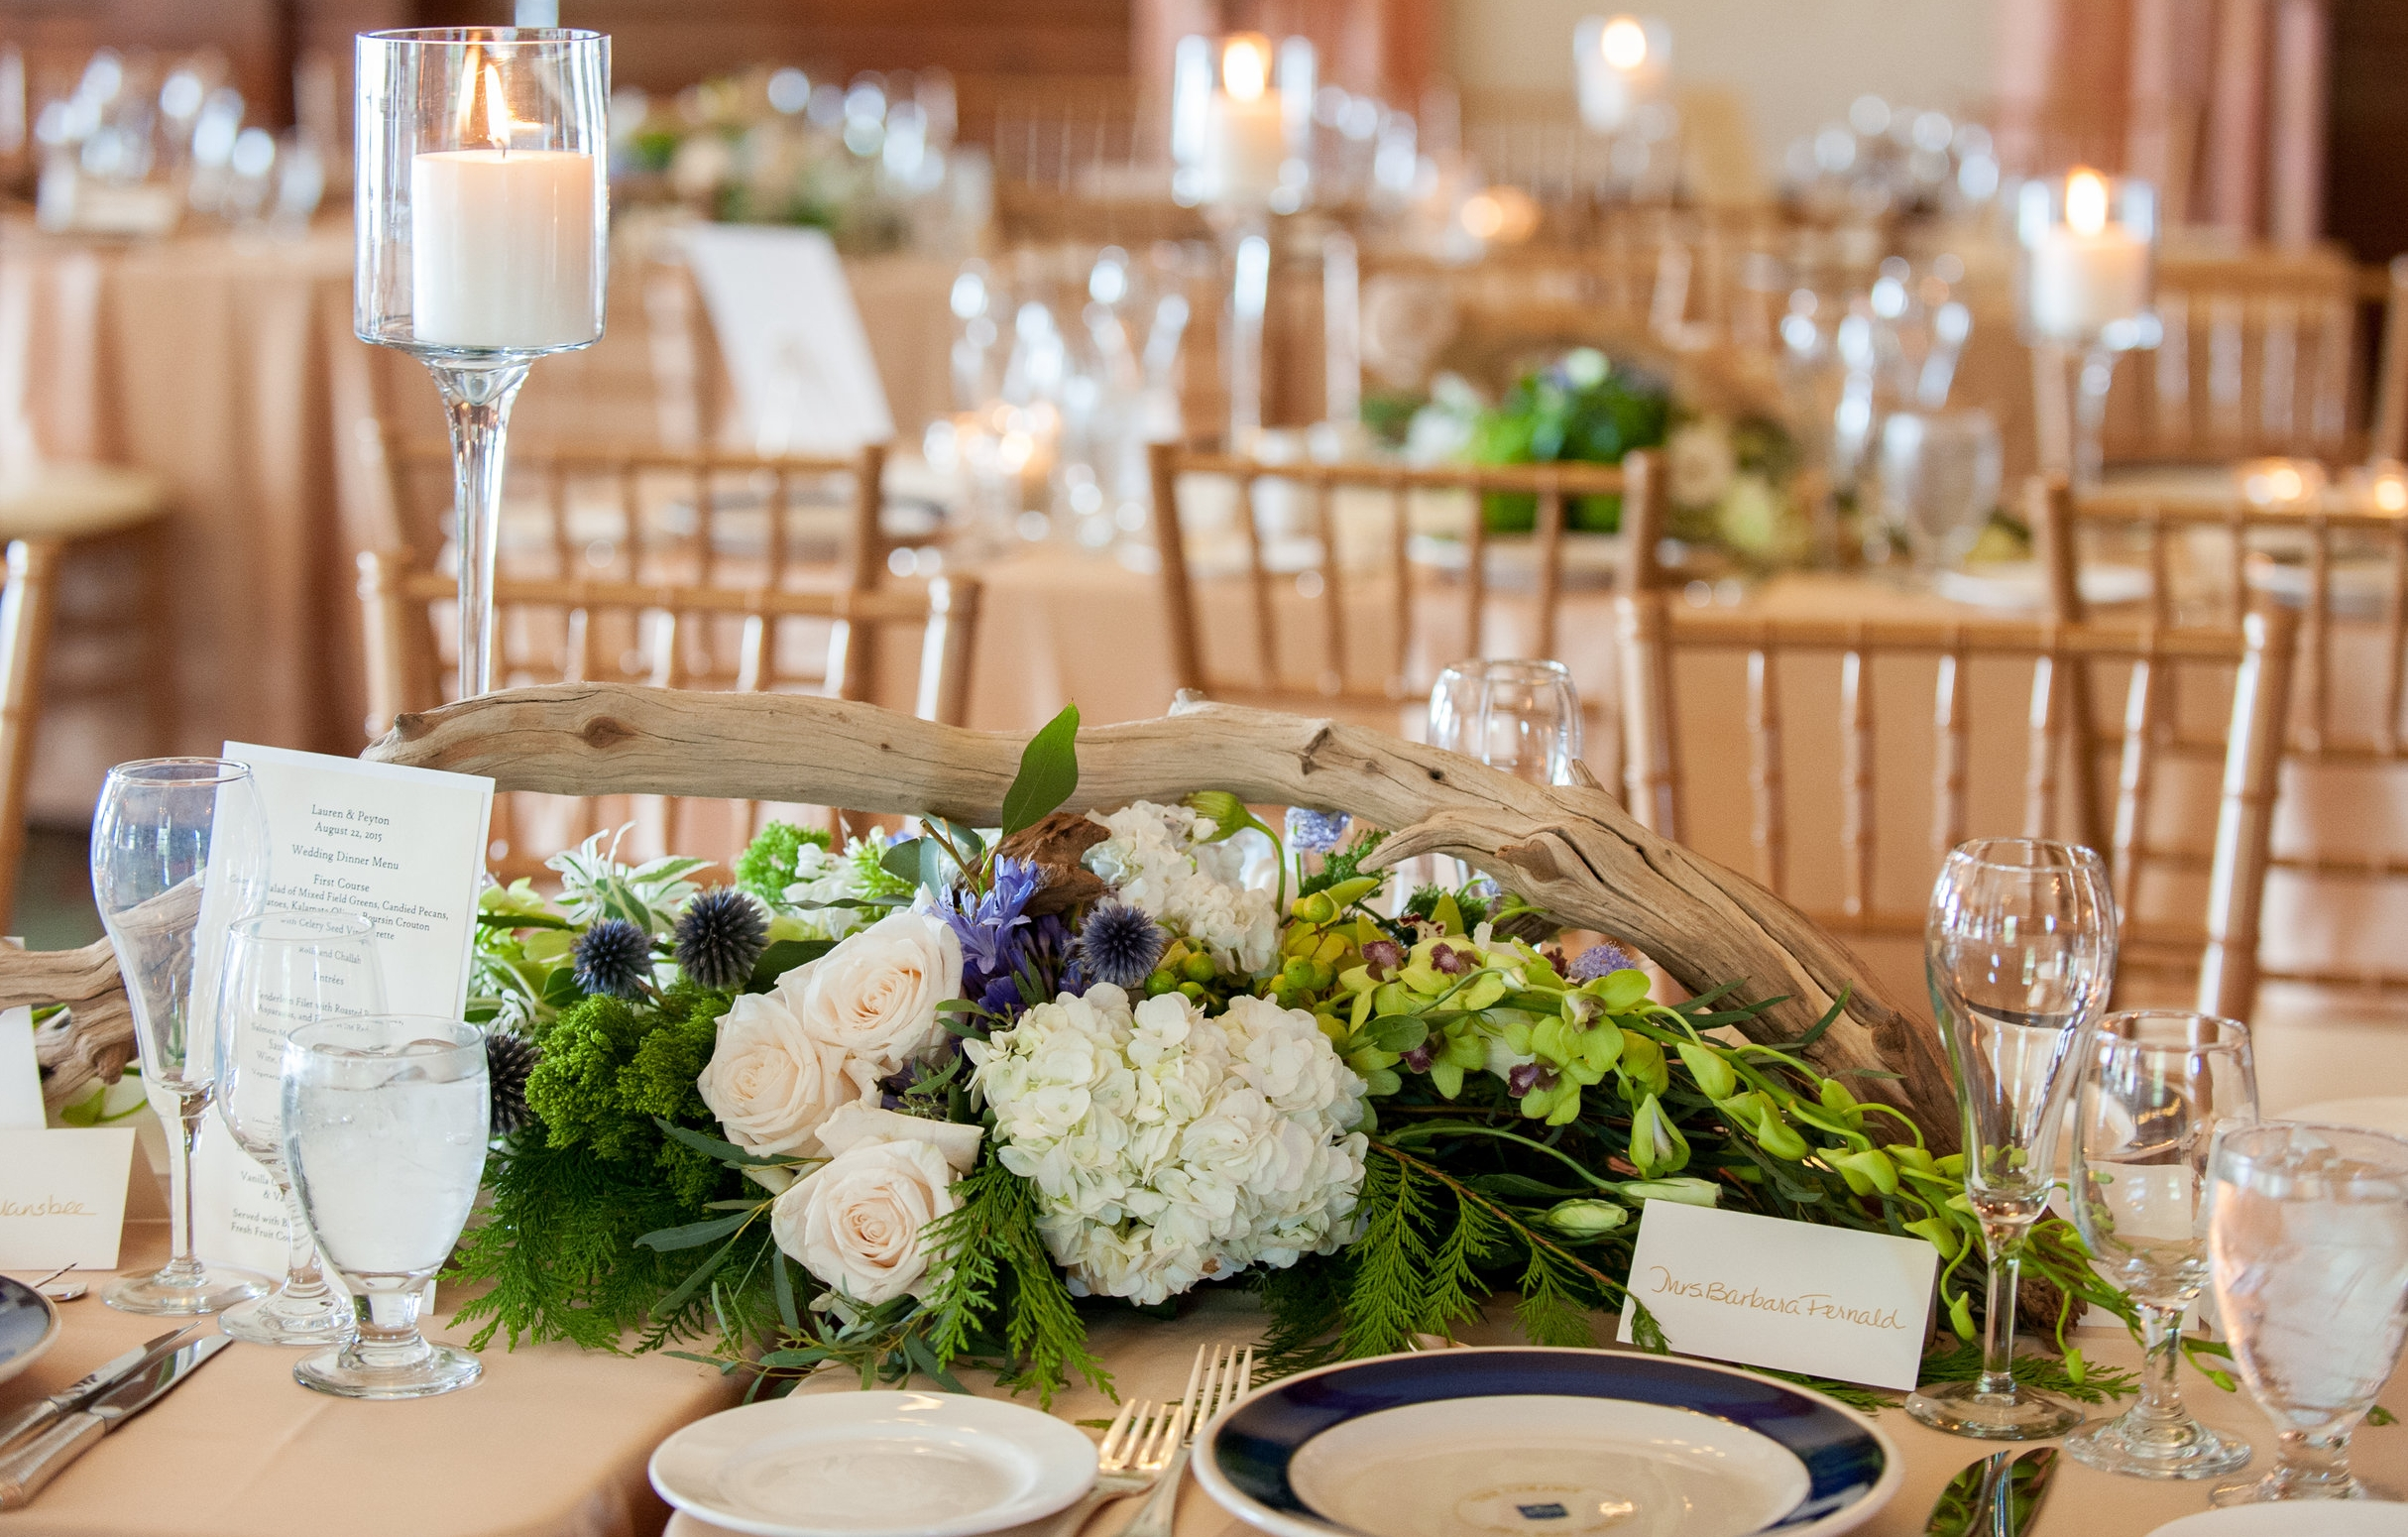 Florals in shades of cream and blue enhanced the bridal bouquet, chuppah, and centerpieces for the main event. Driftwood added a rugged Maine touch to the elegant formal tables.